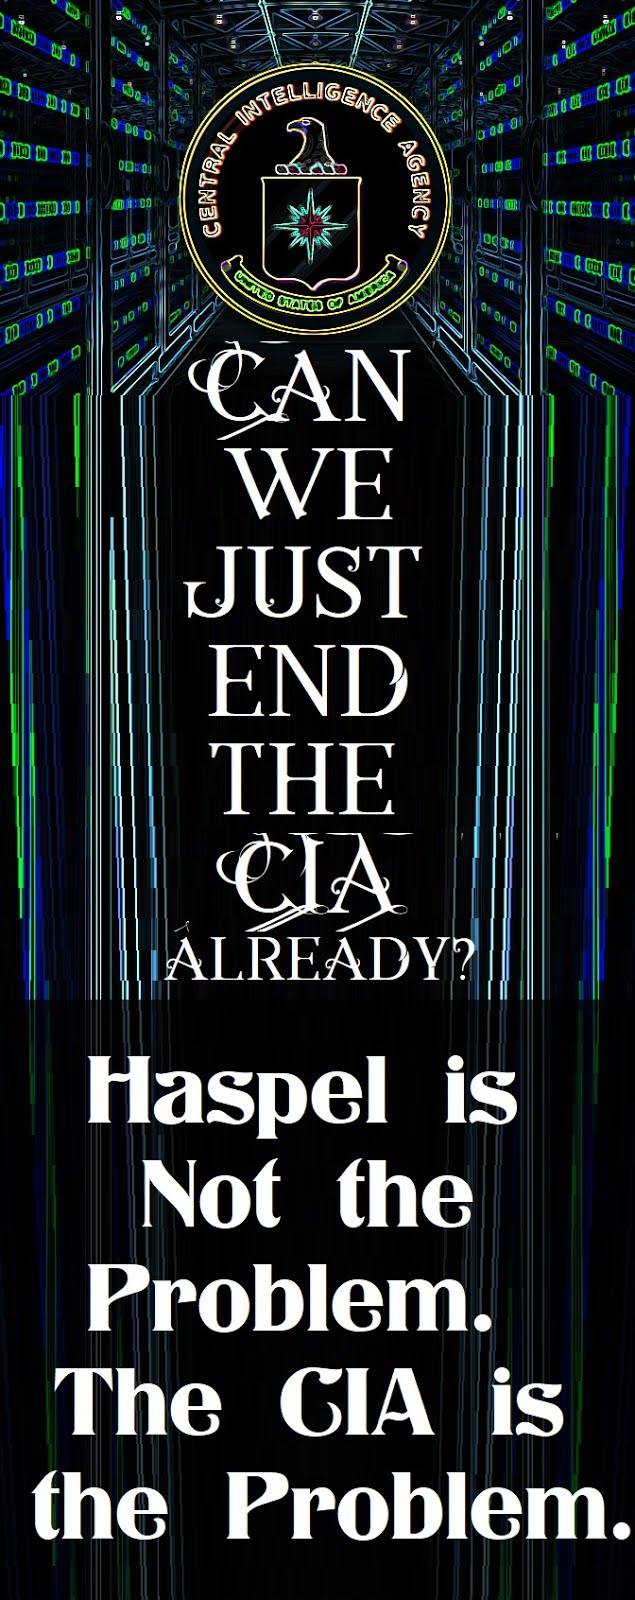 End The CIA!